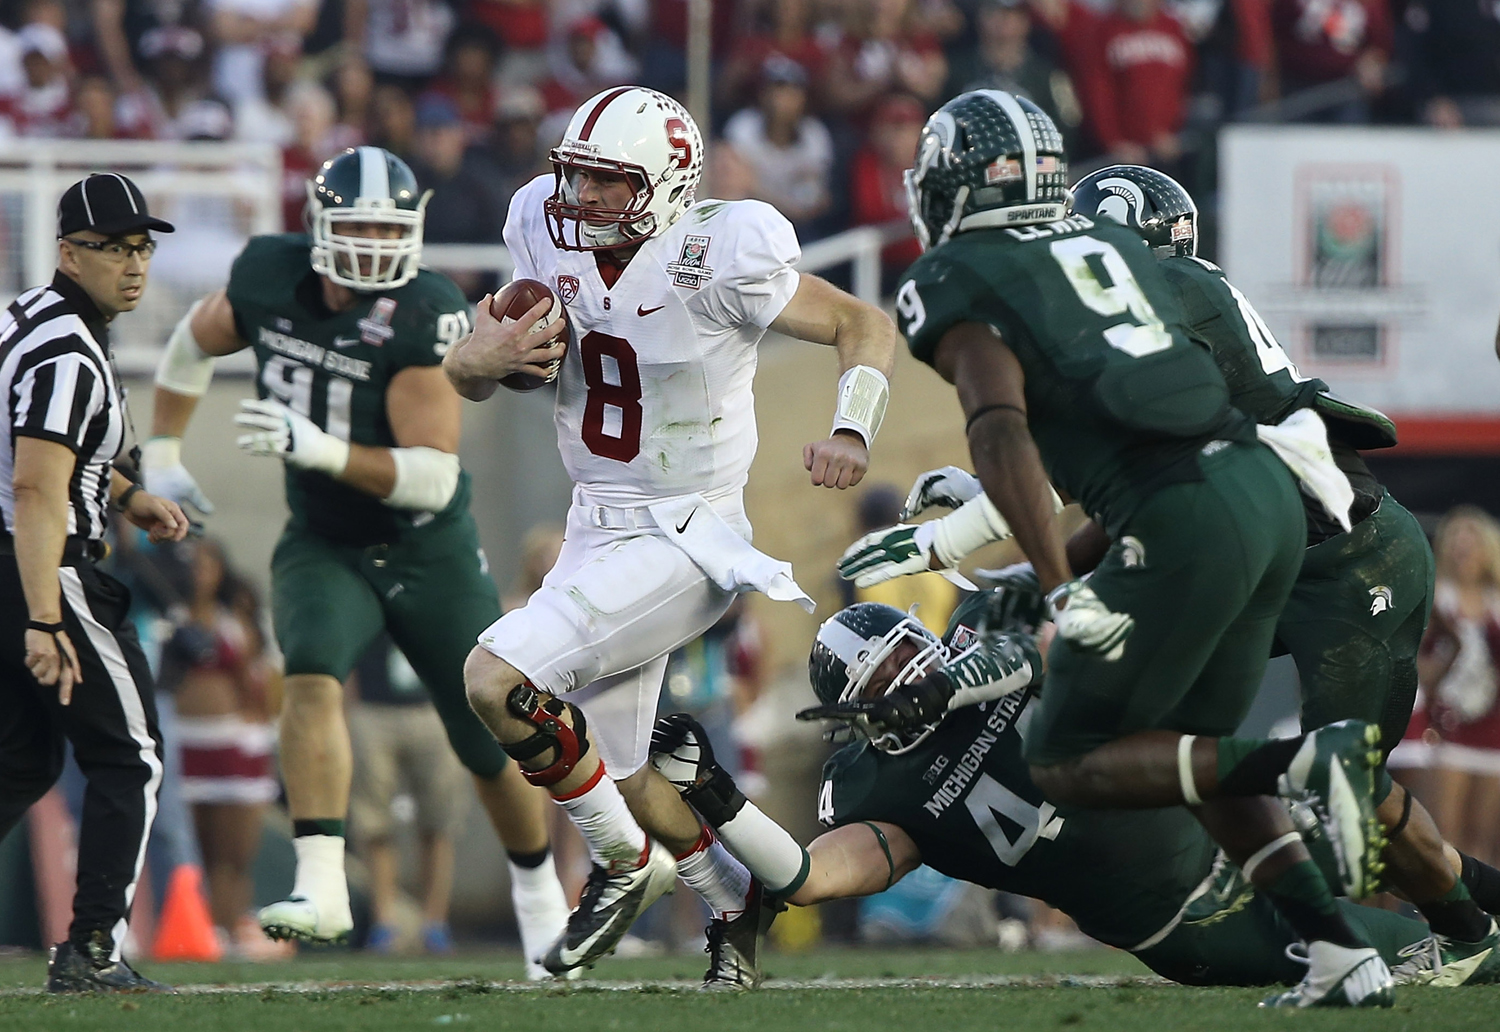 Stanford Cardinal quarterback Kevin Hogan during the 100th Rose Bowl NCAA college football game against the Michigan State Spartans at the Rose Bowl in Pasadena, Calif. (Ben Liebenberg/NFL)